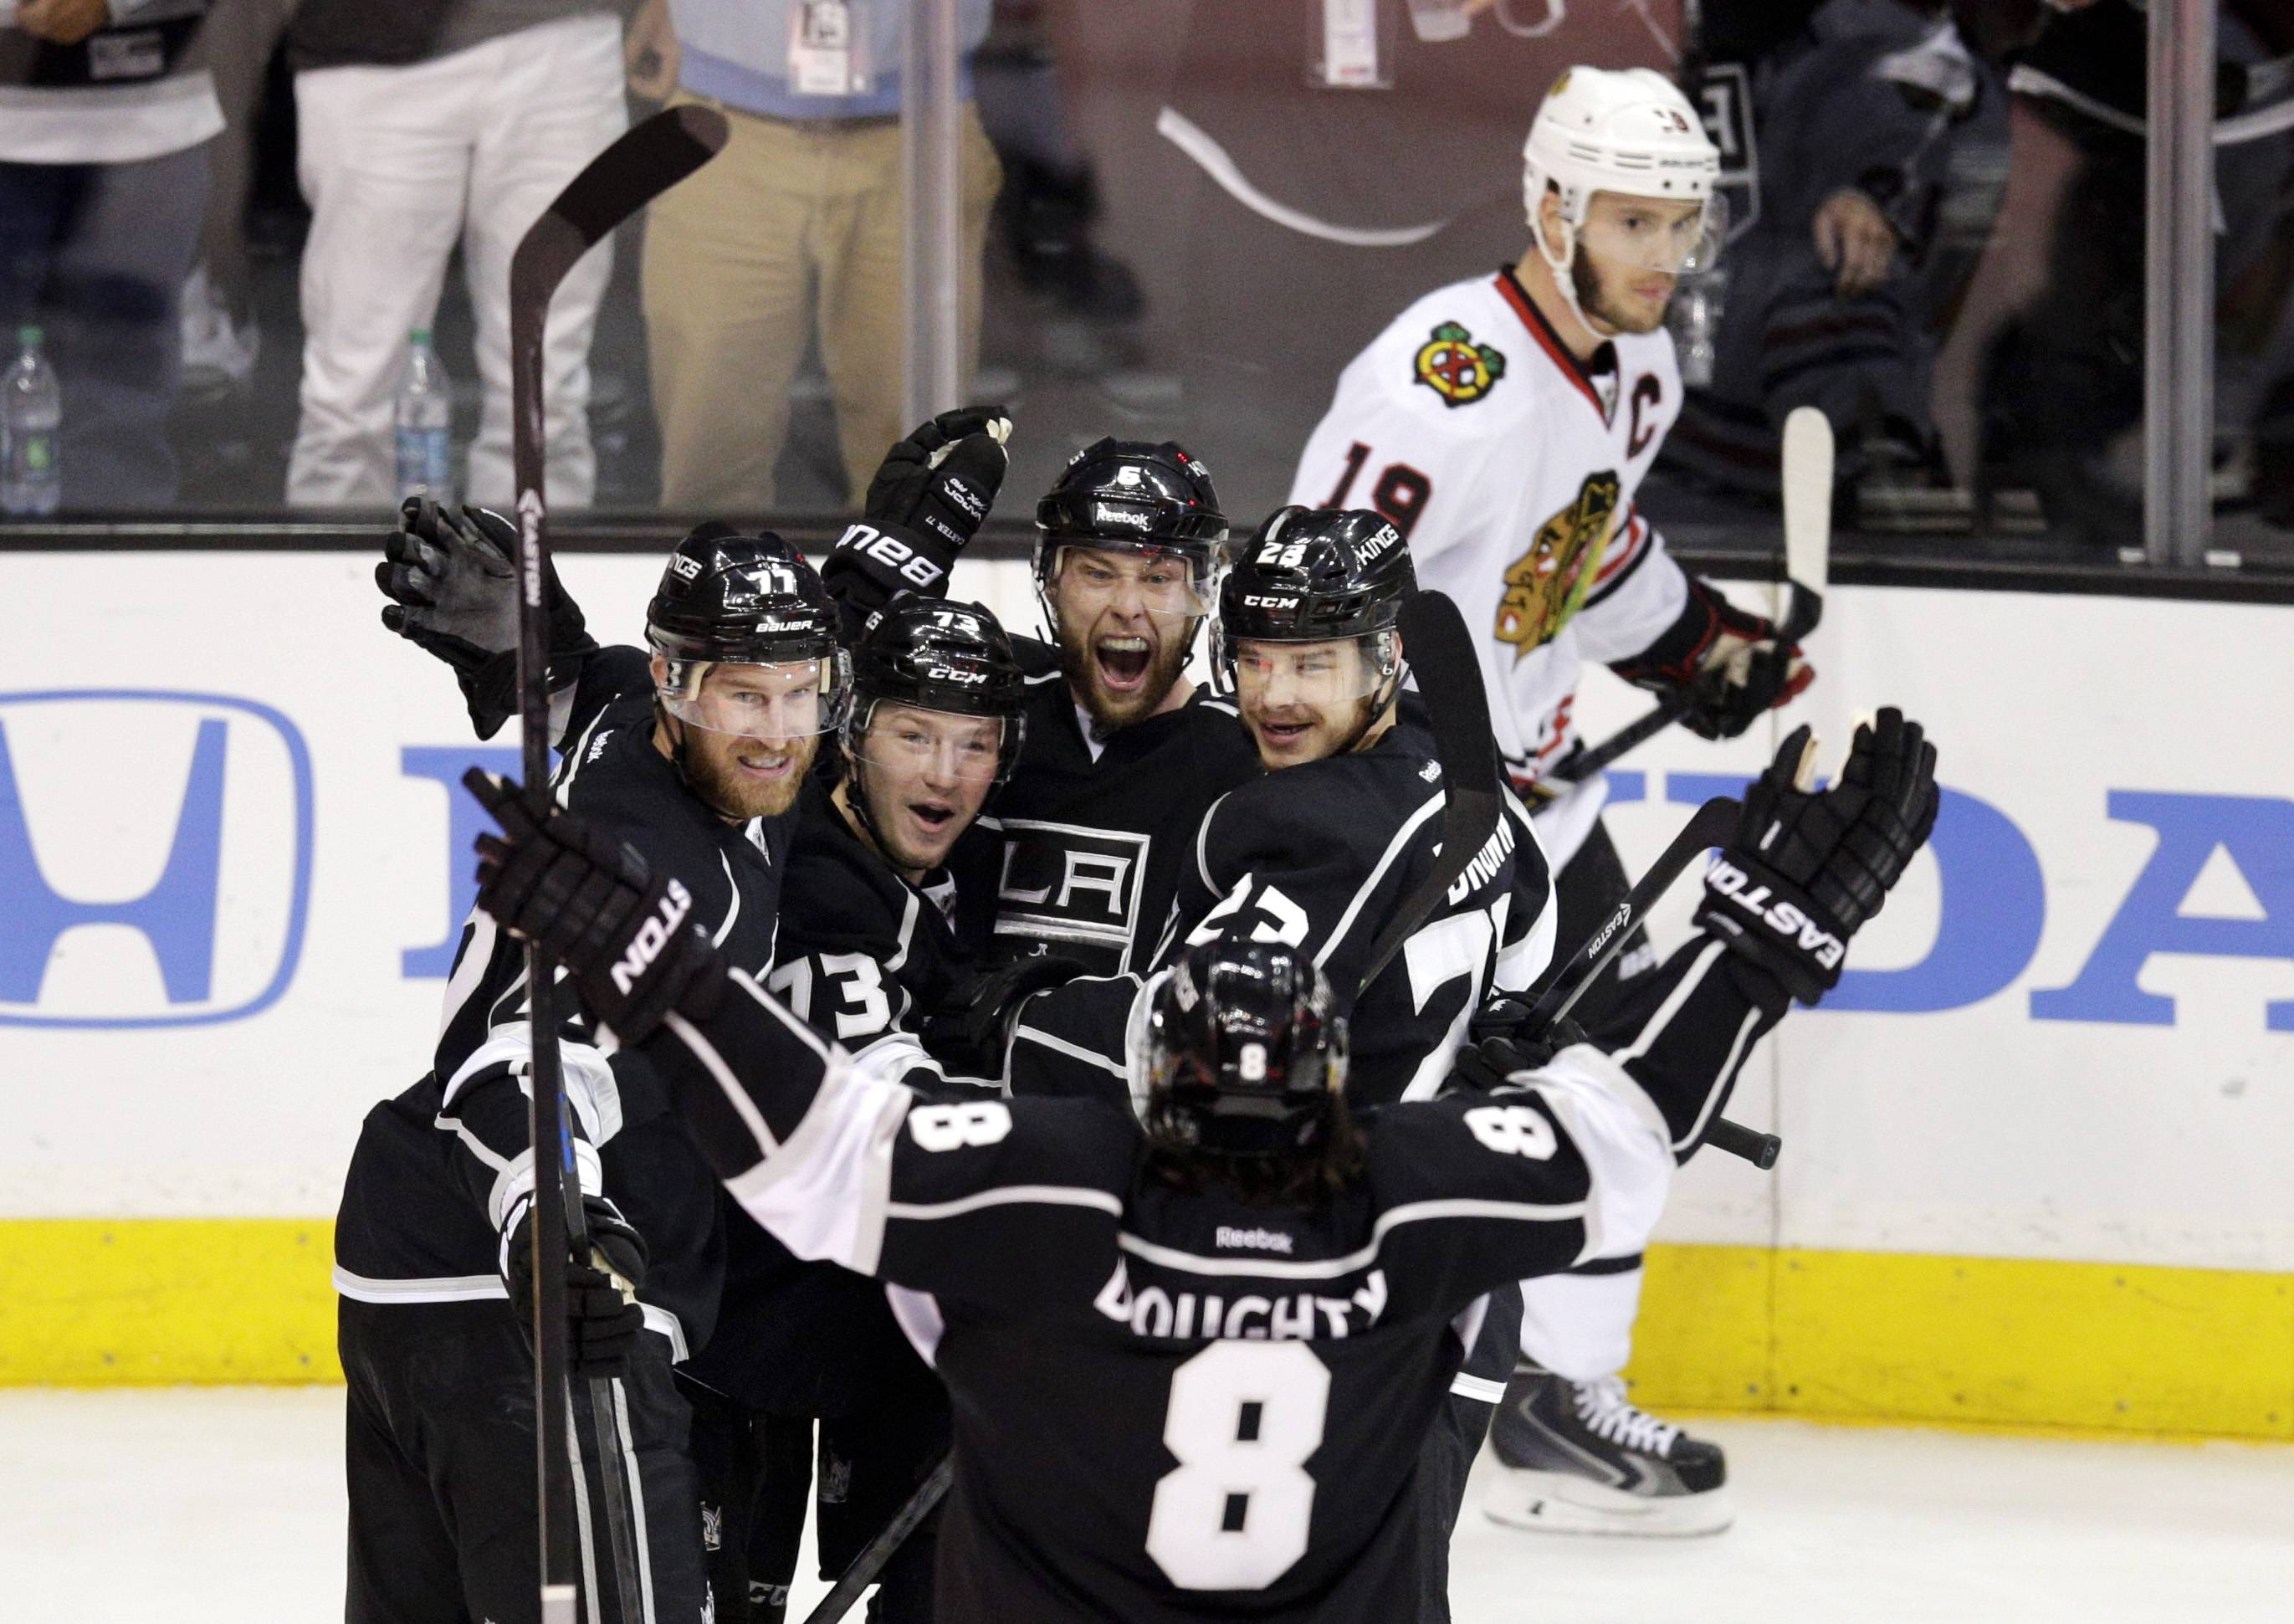 Los Angeles Kings' Jeff Carter (77), Tyler Toffoli (73), Jake Muzzin (6), Dustin Brown (23) and Drew Doughty (8) celebrate a goal by Muzzin as Chicago Blackhawks' Jonathan Toews (19) skates behind them during the first period of Game 4 of the Western Conference finals of the NHL hockey Stanley Cup playoffs on Monday, May 26, 2014, in Los Angeles.